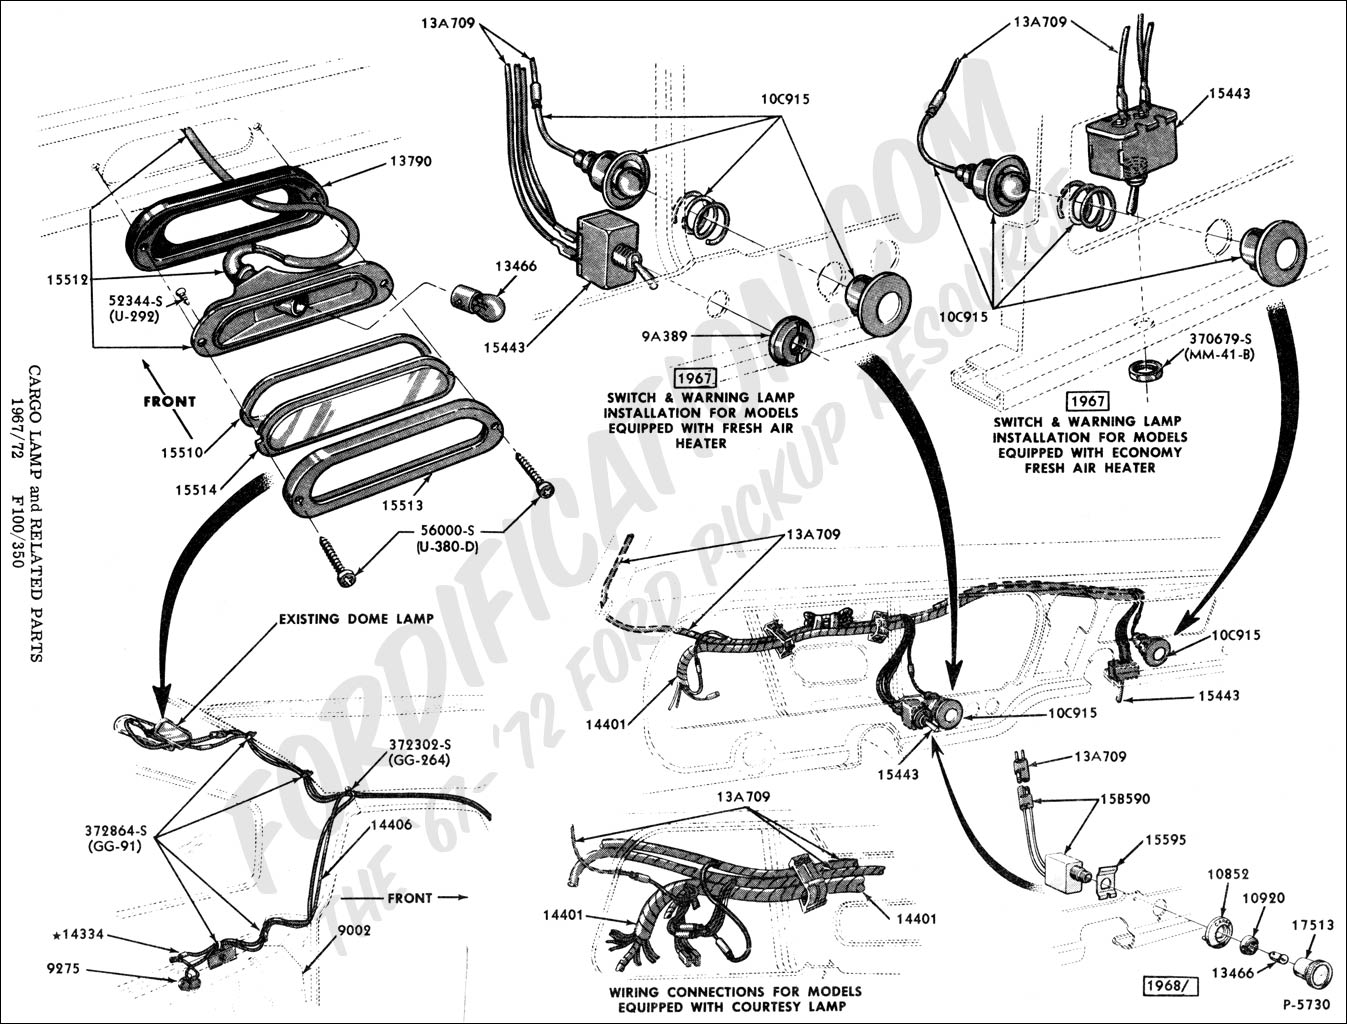 cargolight ford truck technical drawings and schematics section i 1965 ford f100 dash wiring diagram at gsmx.co